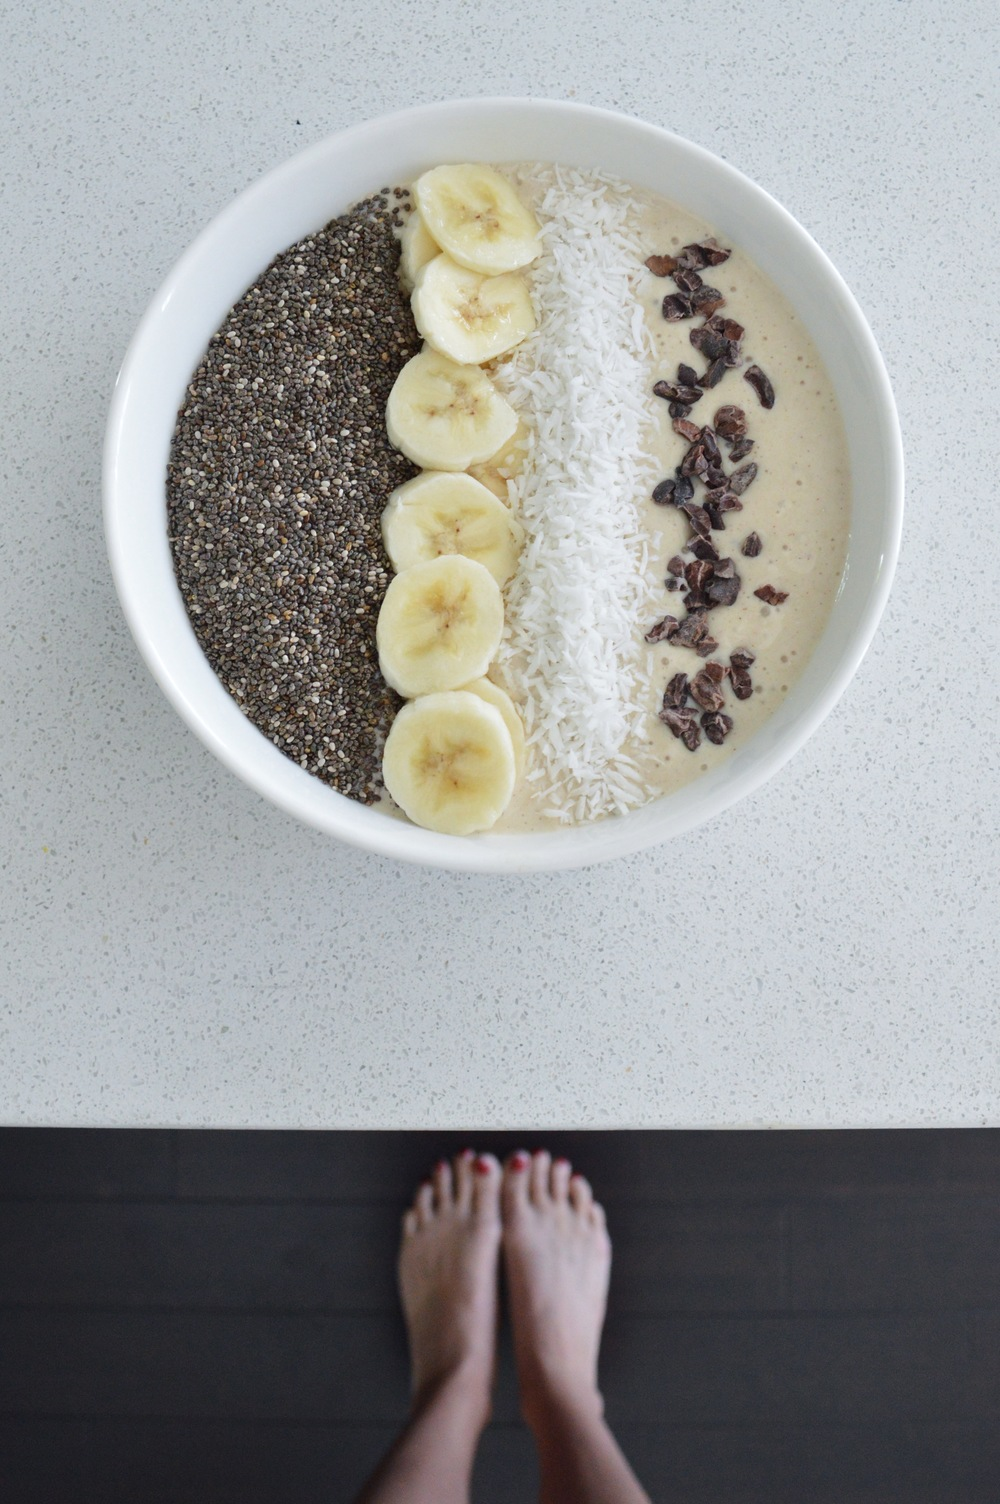 Vanilla-Banana-Smoothie-Bowl-LaurenSchwaiger-Healthy-Life-Style-Blog.jpg